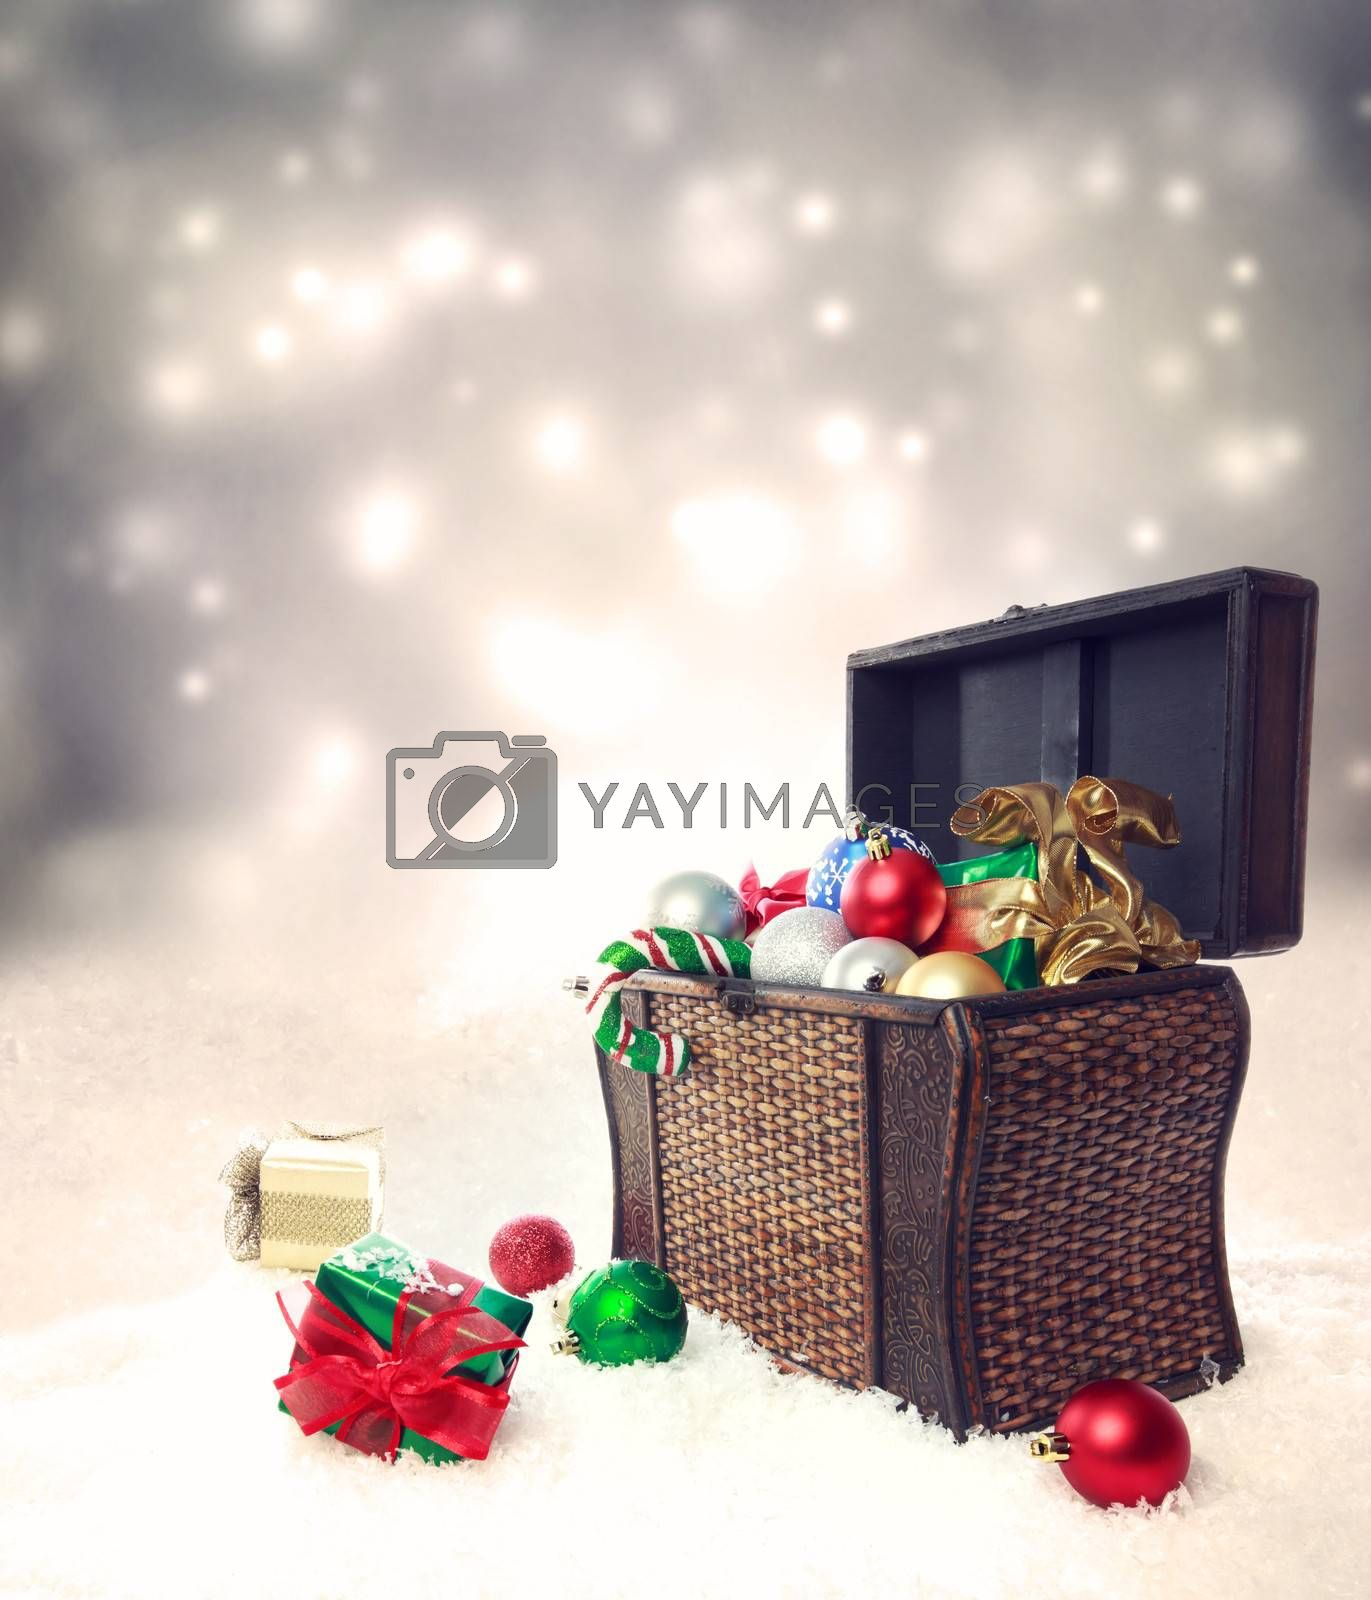 Royalty free image of Treasure box filled with Christmas ornaments and presents by melpomene